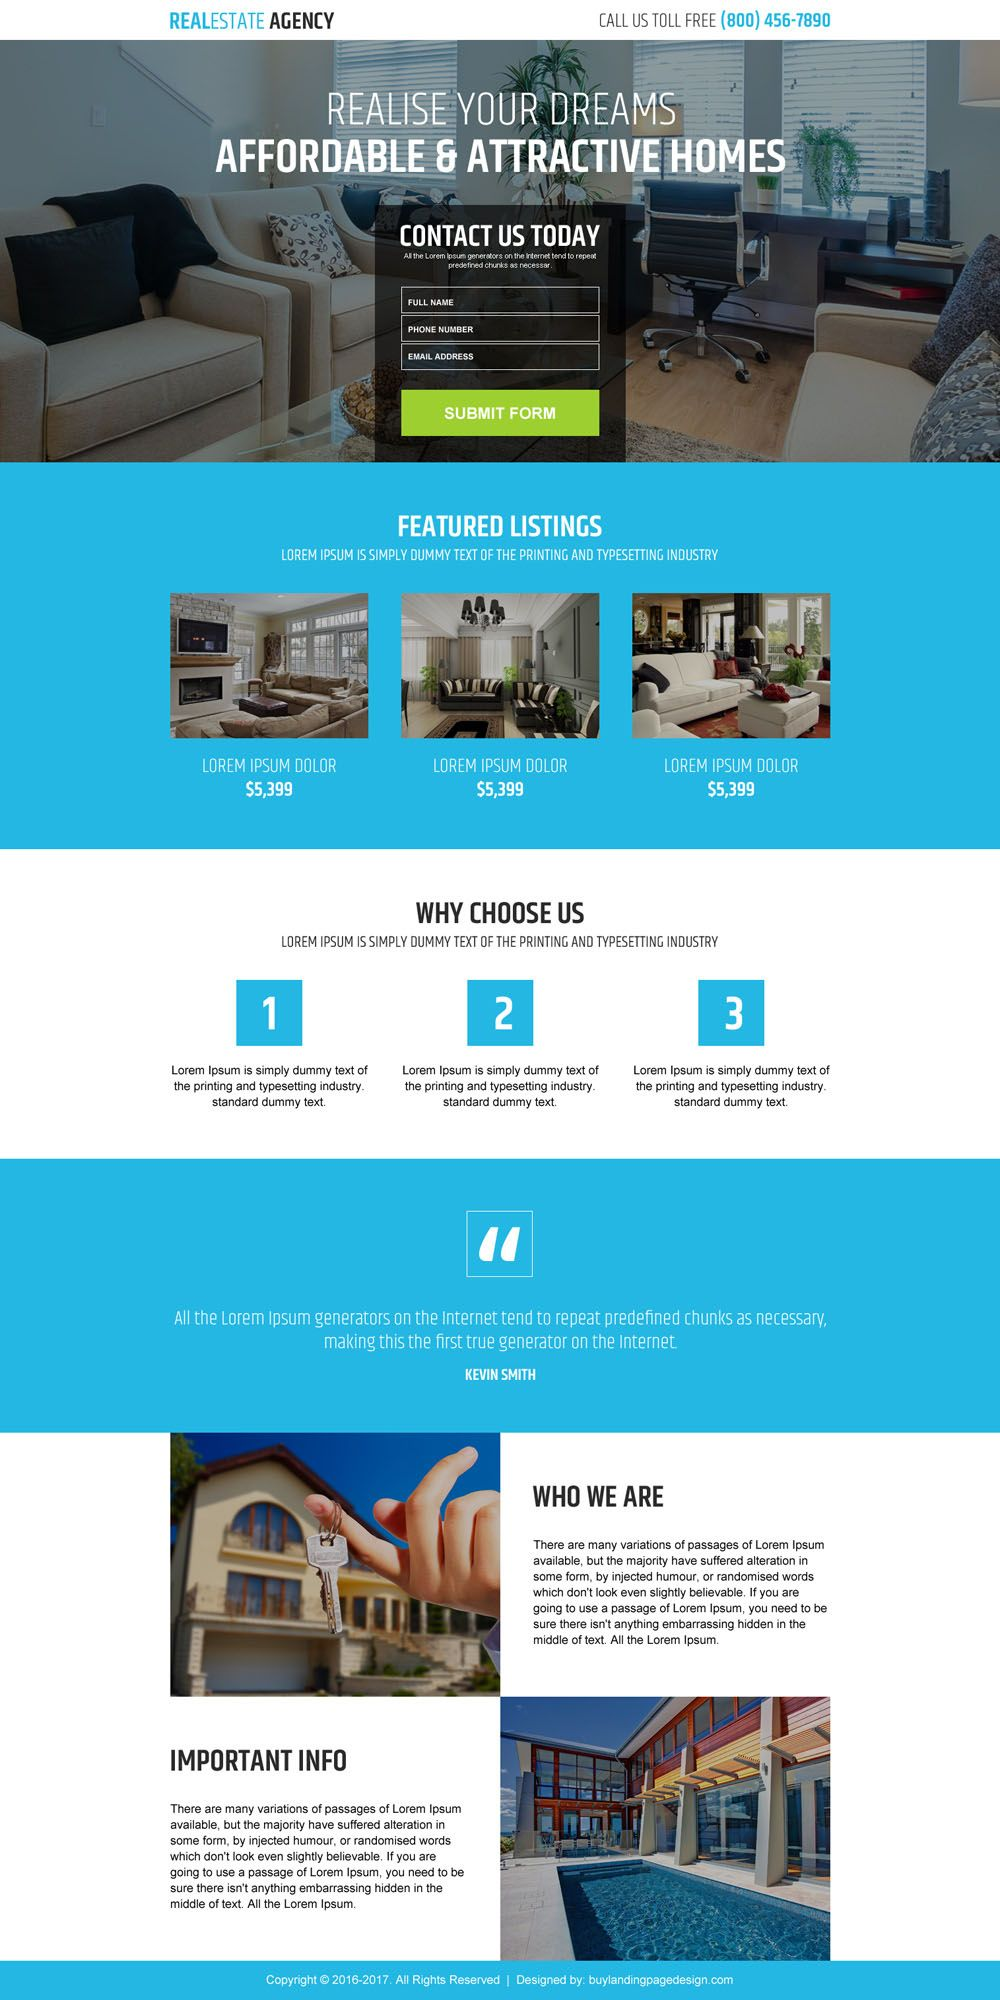 real estate agency business service landing page design